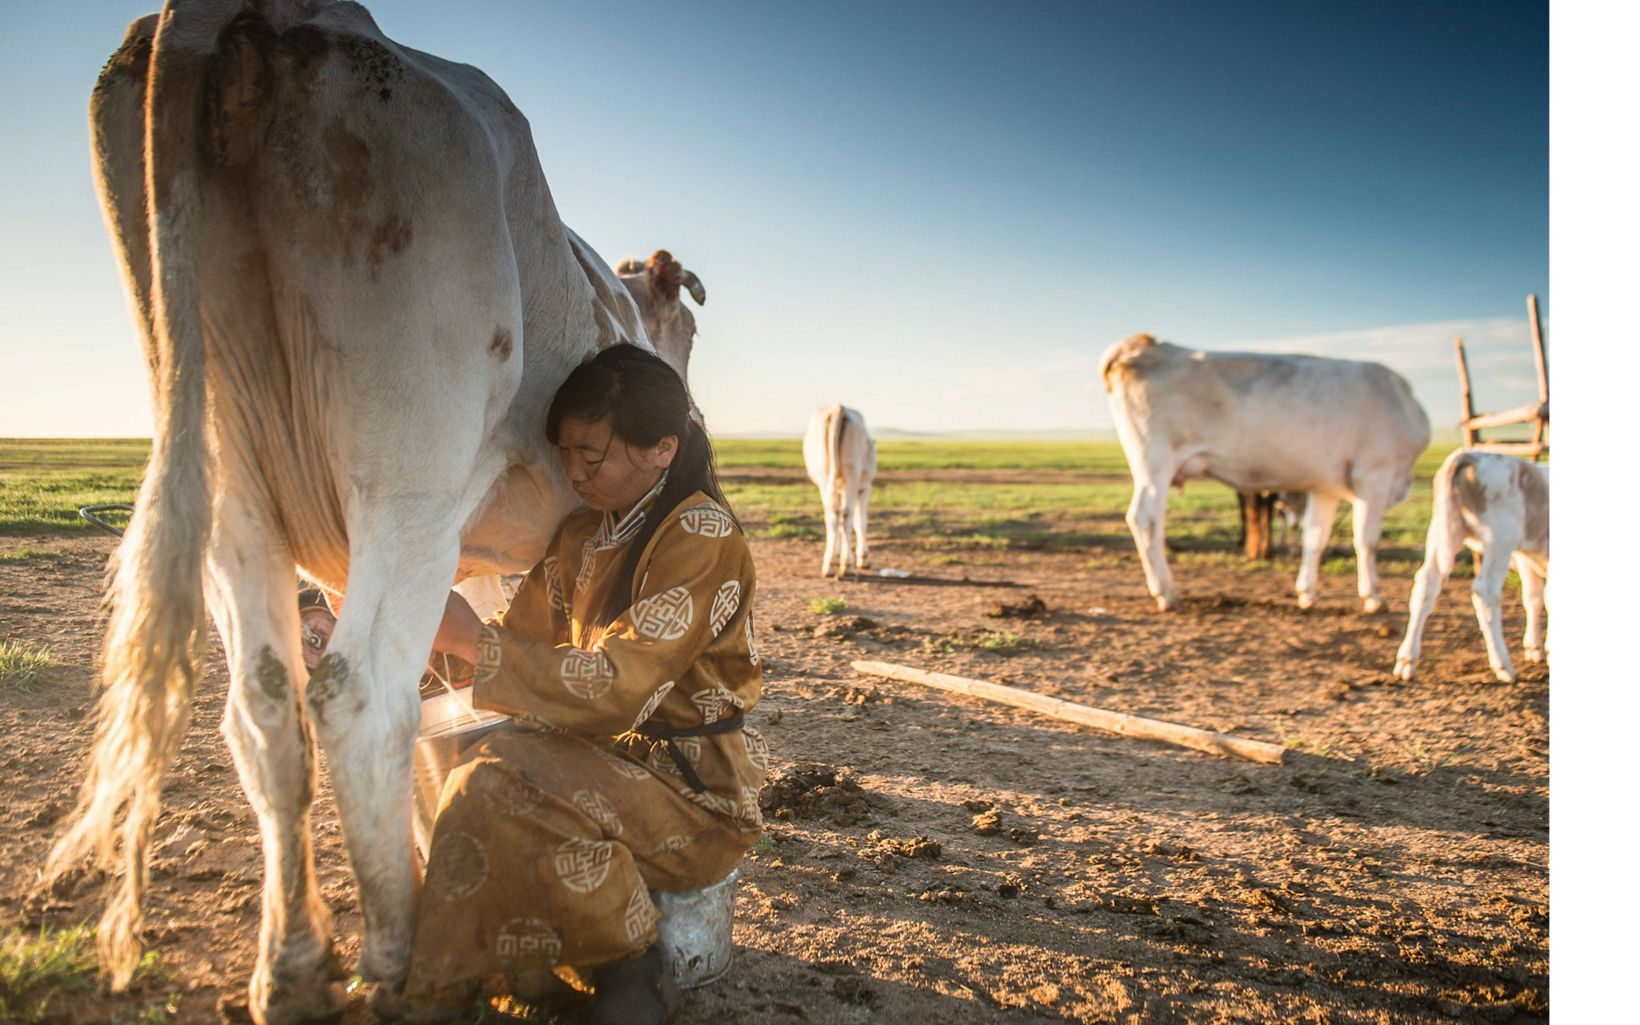 A young woman milks her family's dairy cow at dawn.